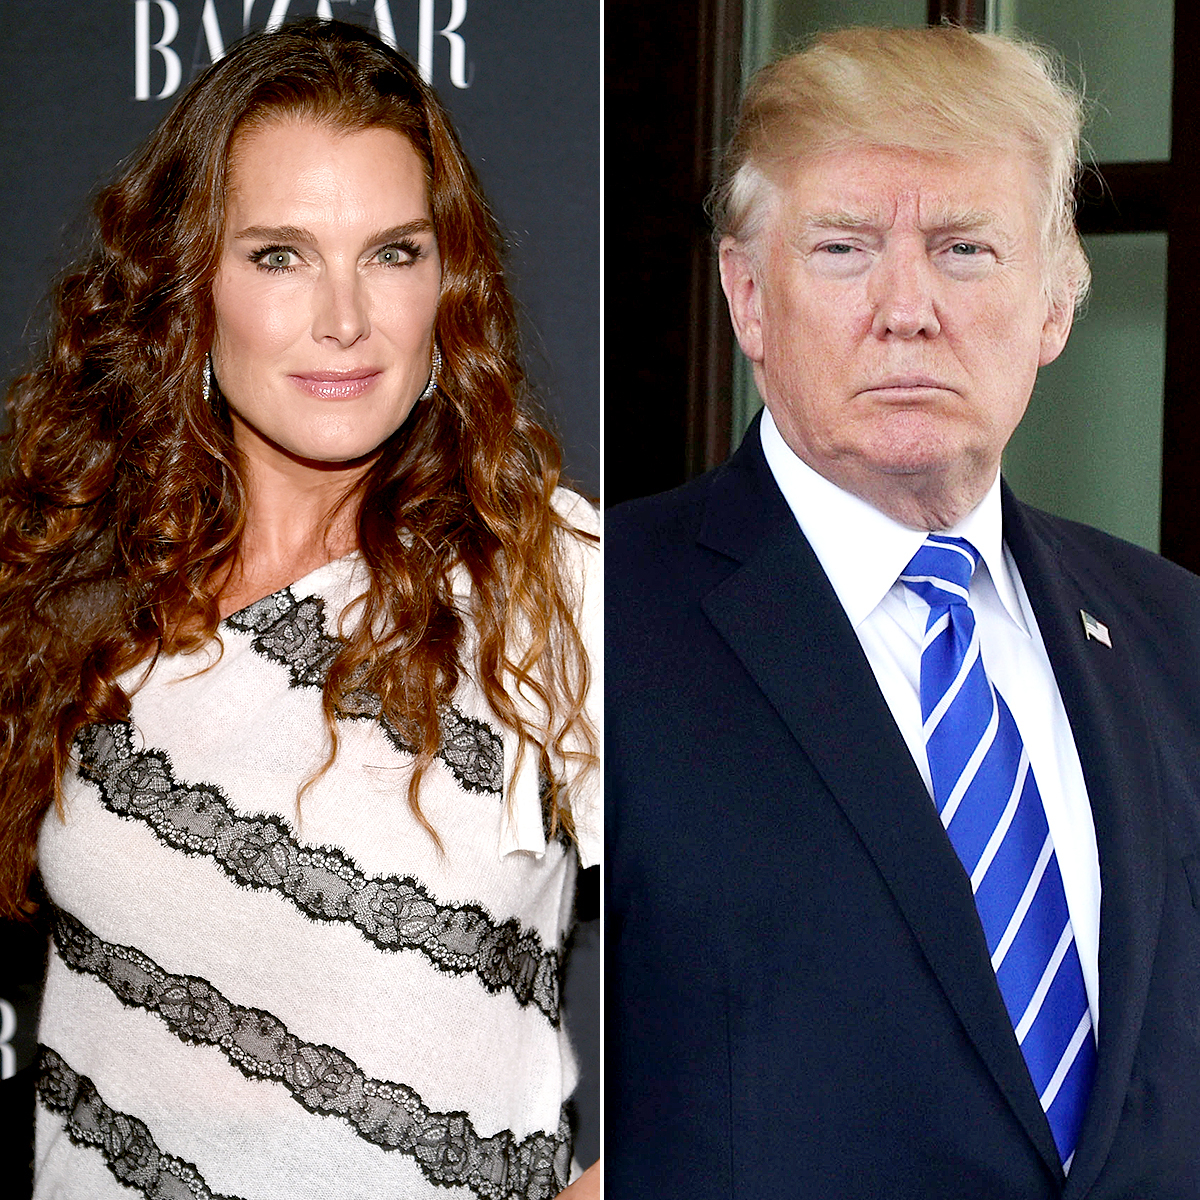 Brooke Shields and Donald Trump